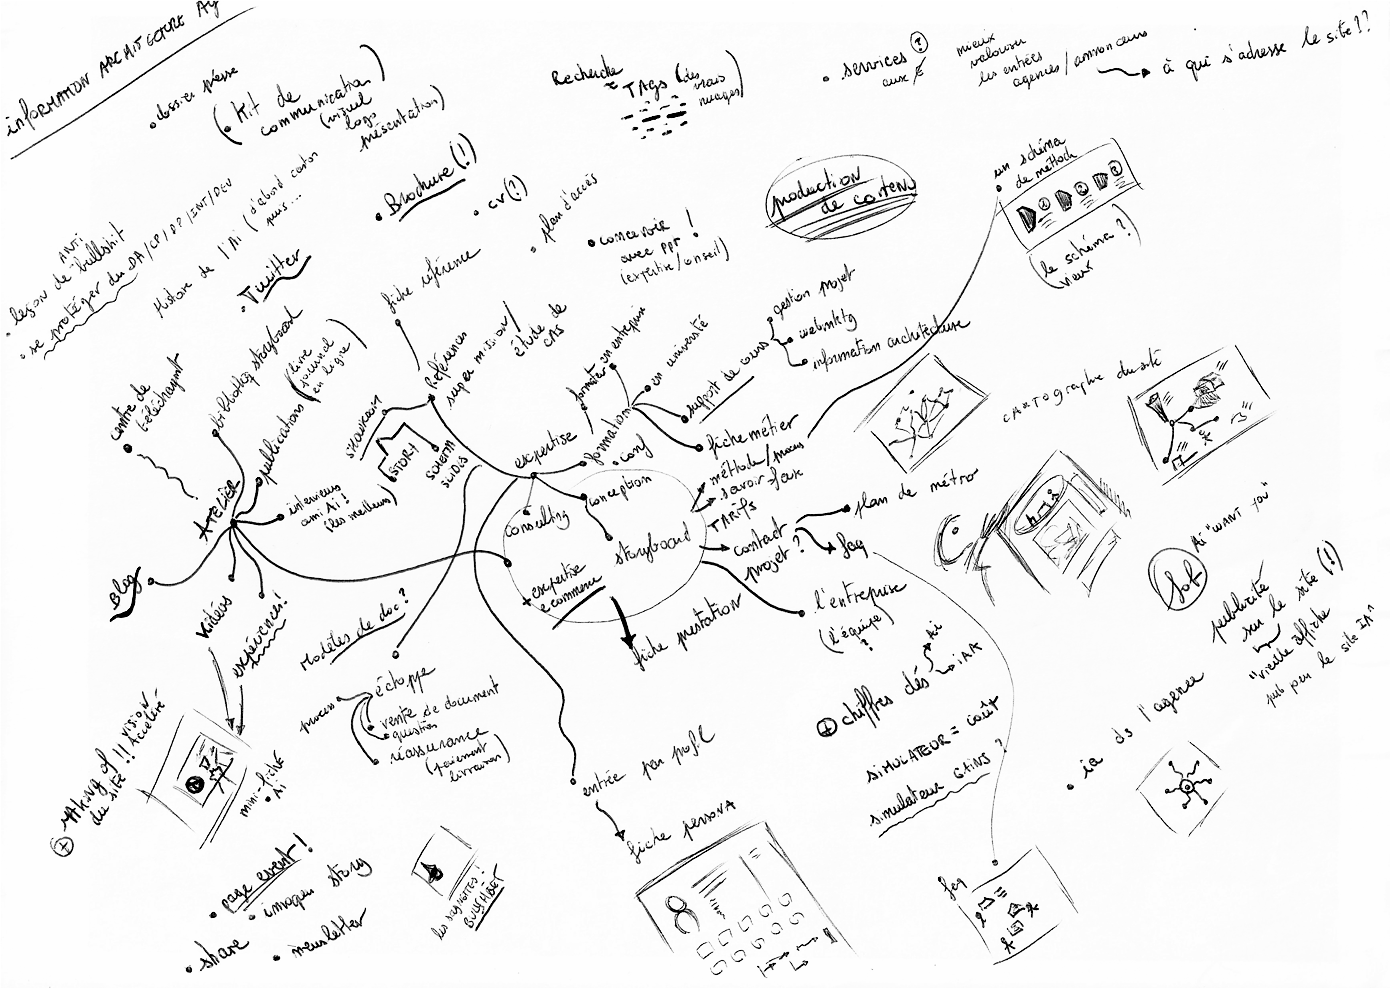 mind-map iafactory